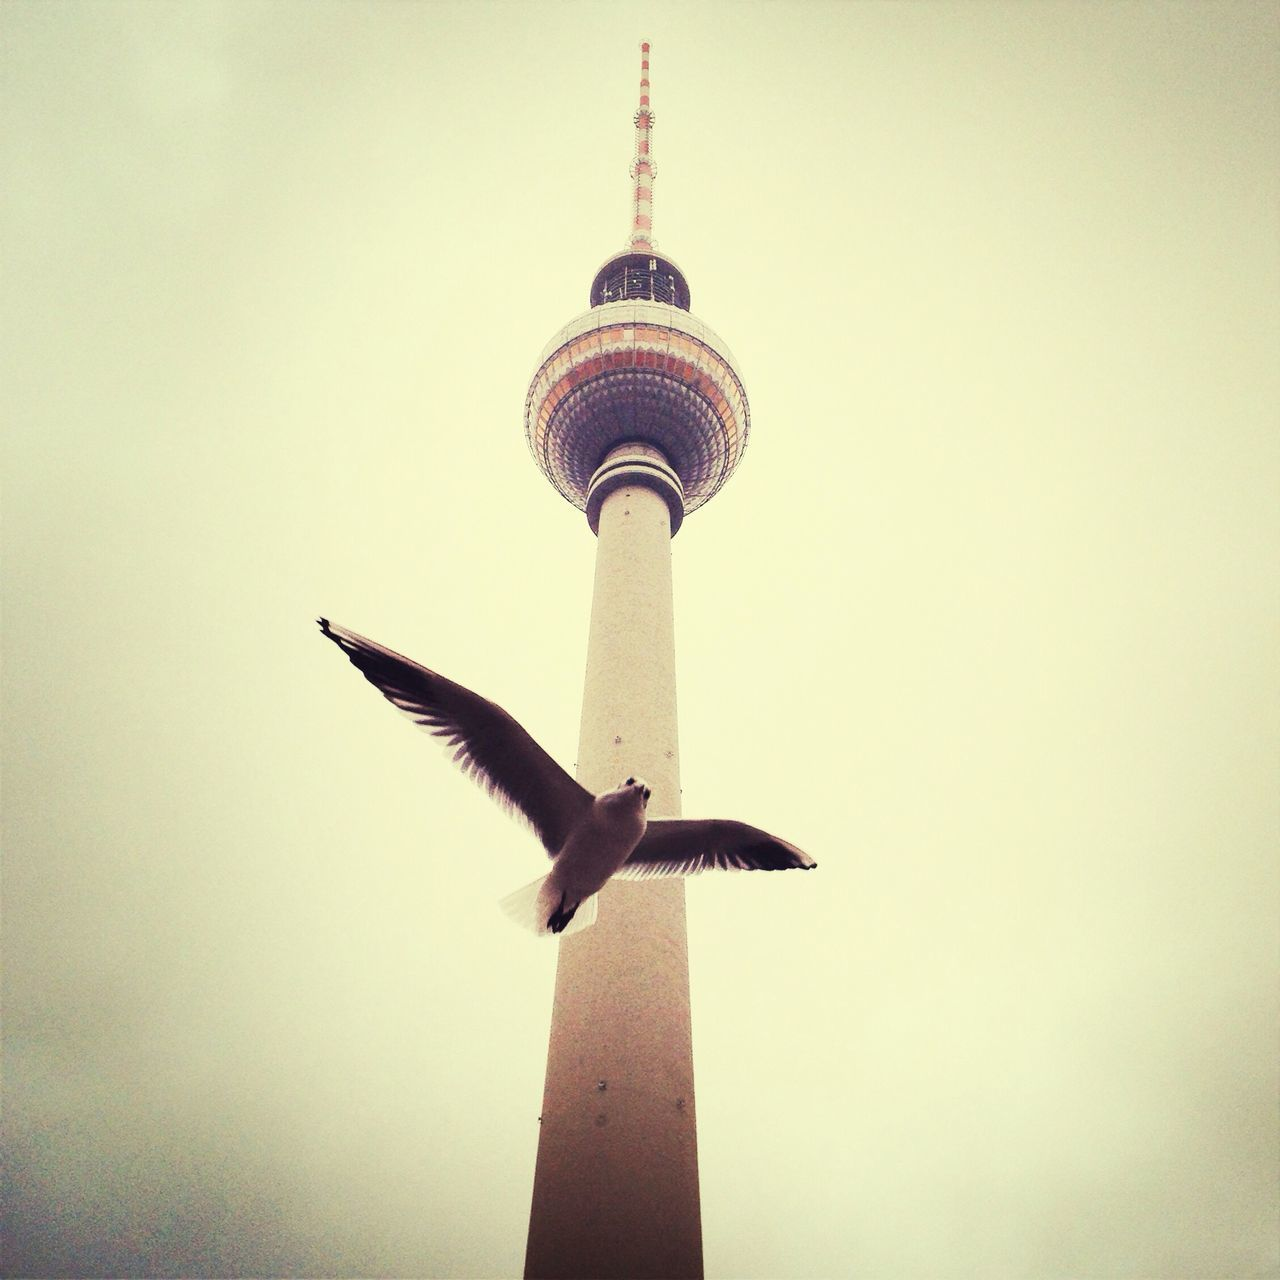 Tvtower Alexanderplatz Dove Pigeon EyeEm Deutschland EyeEm Best Shots - Architecture EyeEm Best Shots Streetphotography EyeEm Animal Lover OpenEdit